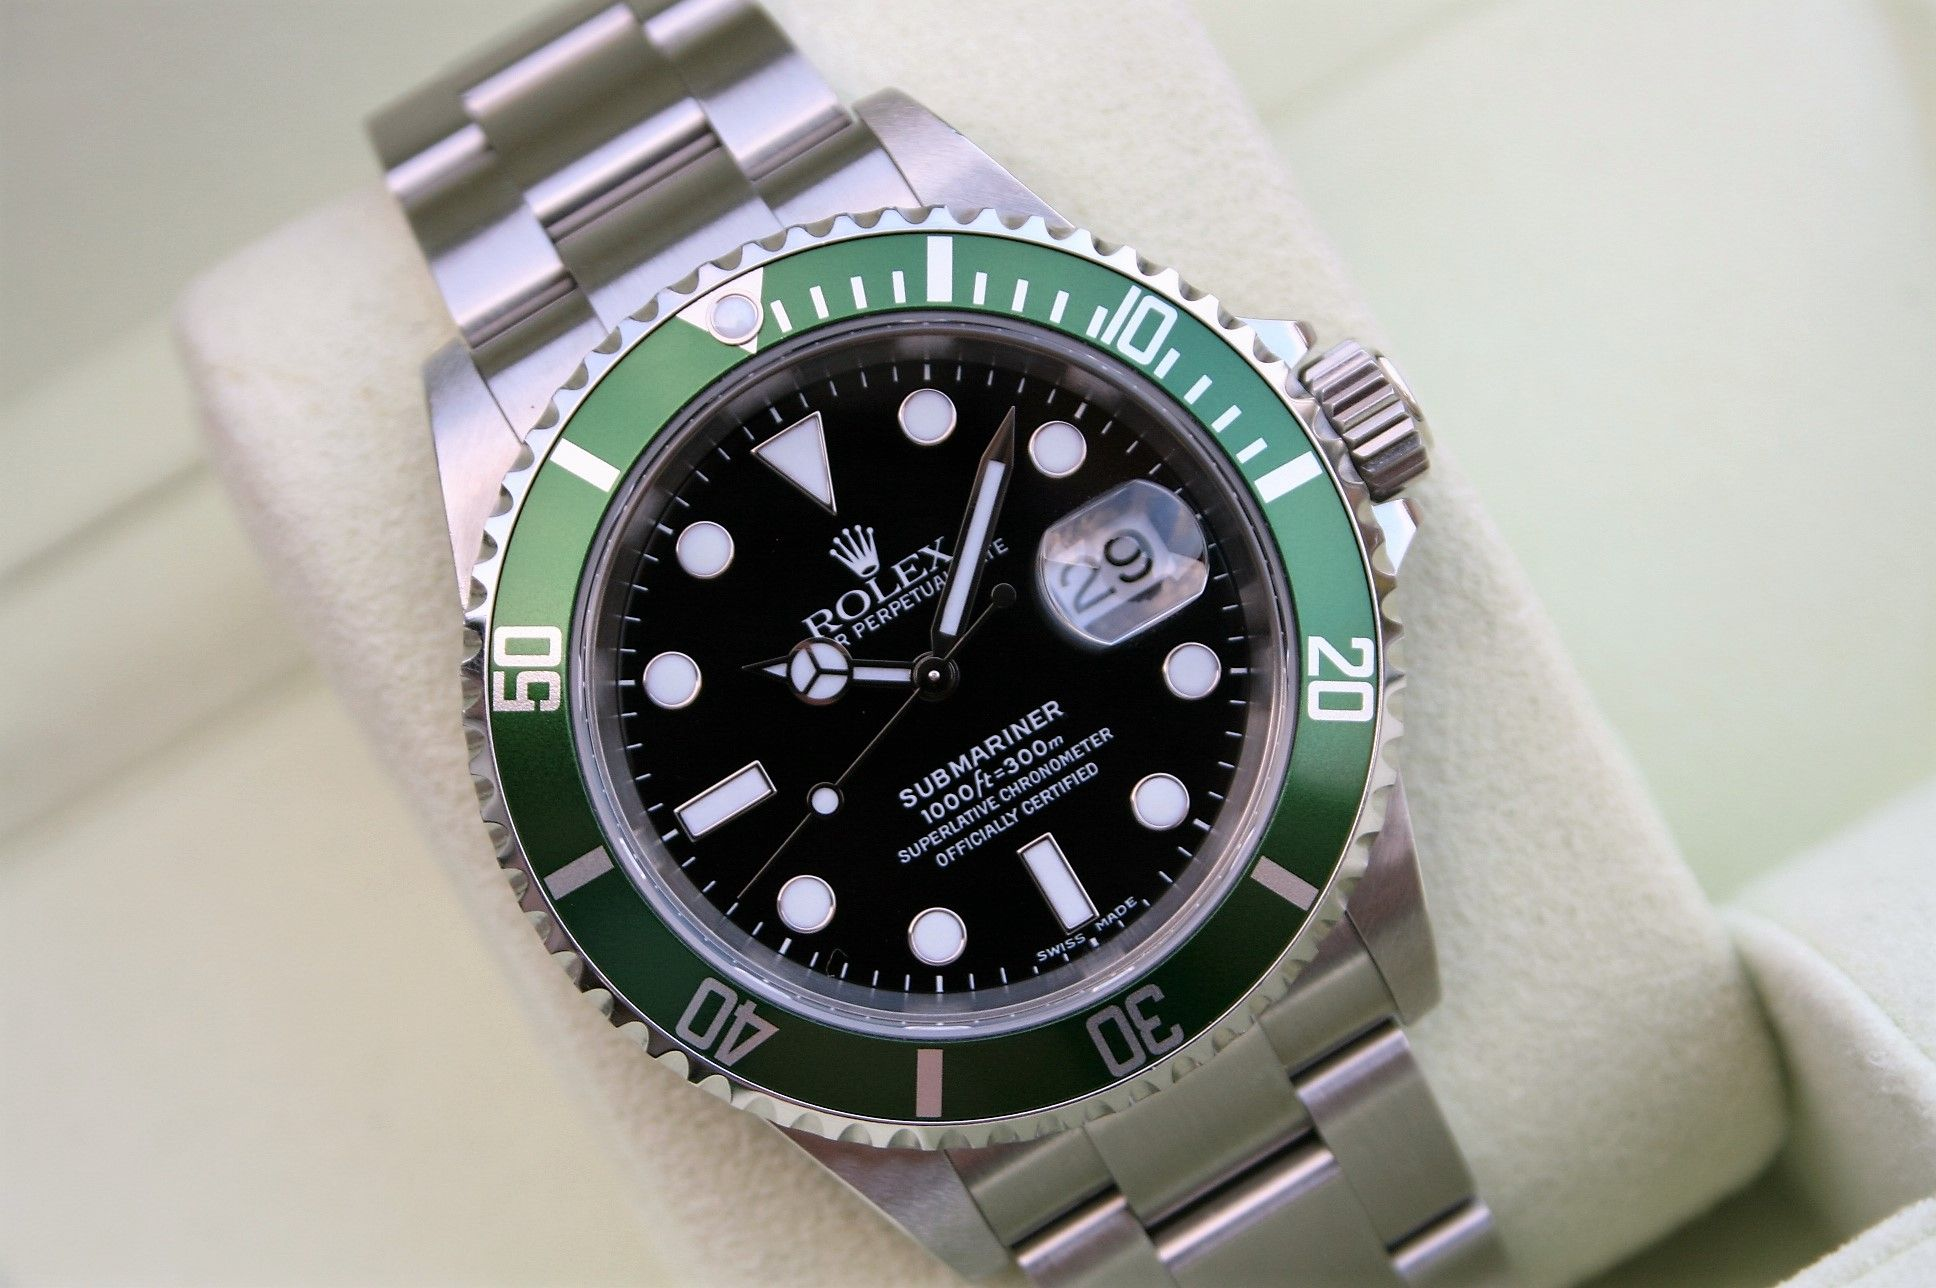 rolex 16610lv green submariner sd watches. Black Bedroom Furniture Sets. Home Design Ideas